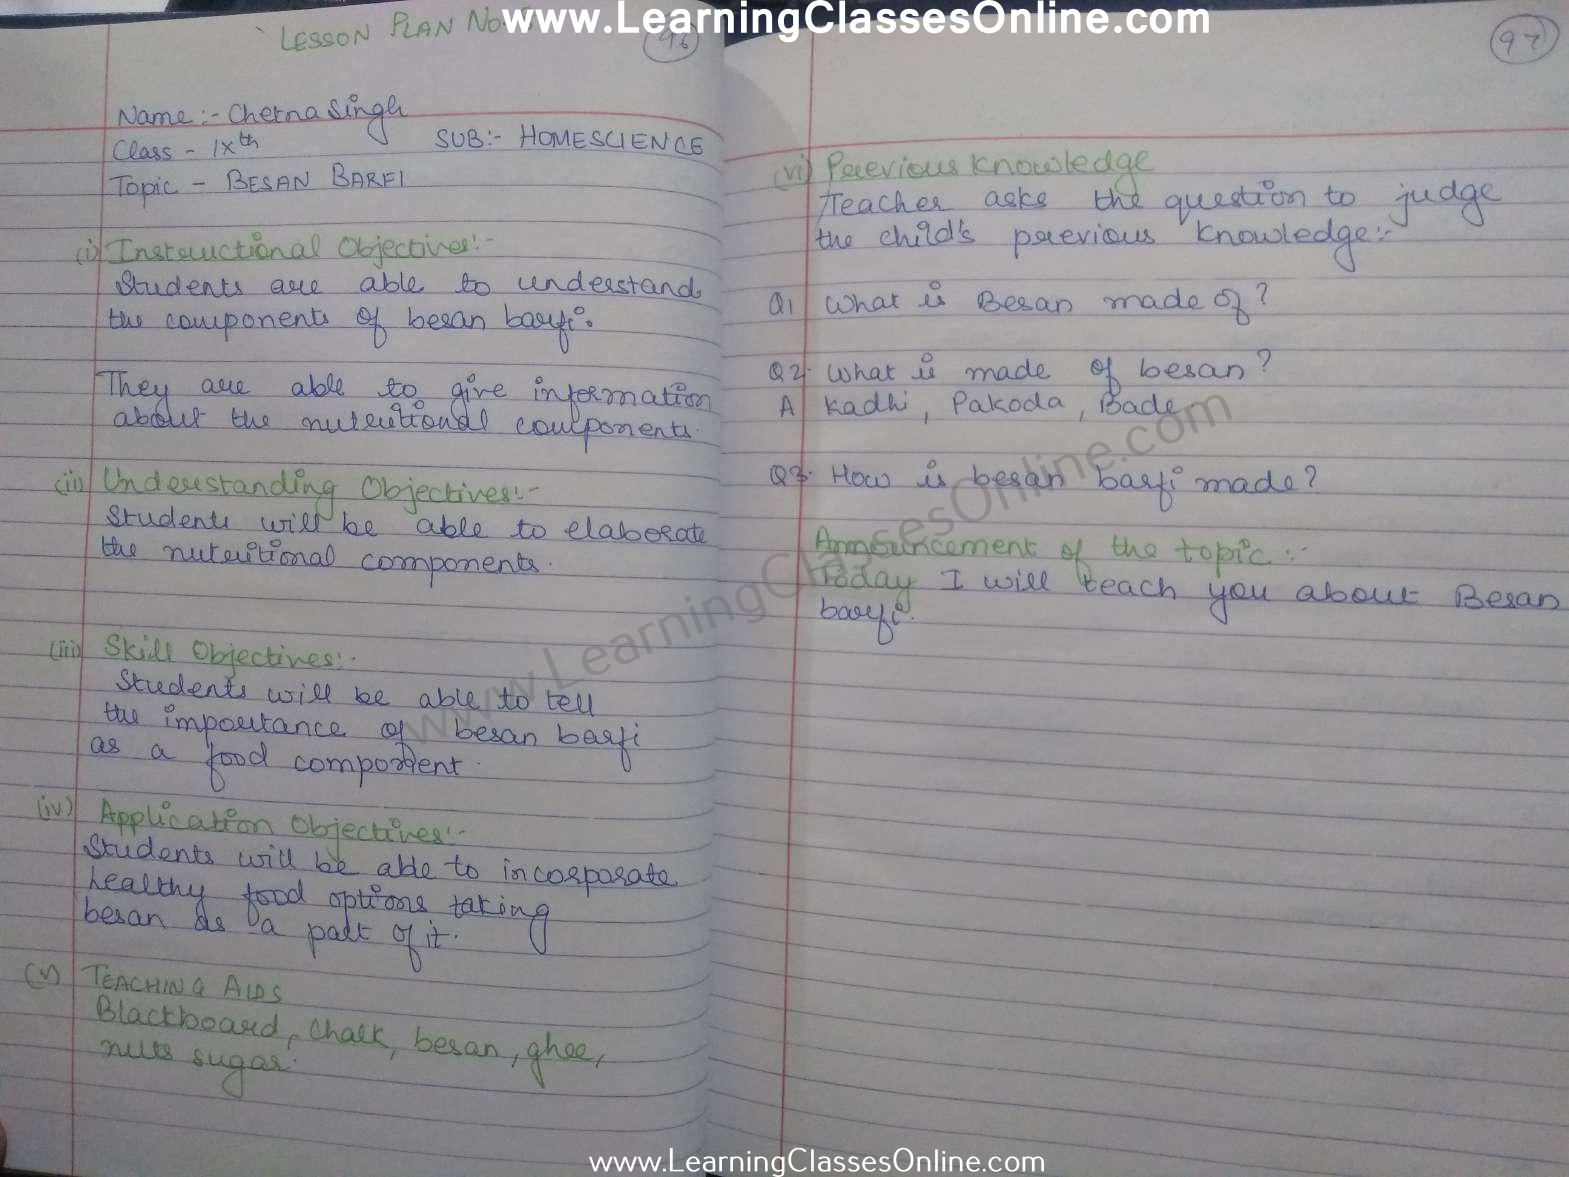 Home Science Lesson Plan Class 8 in English on Besan Barfi free download pdf